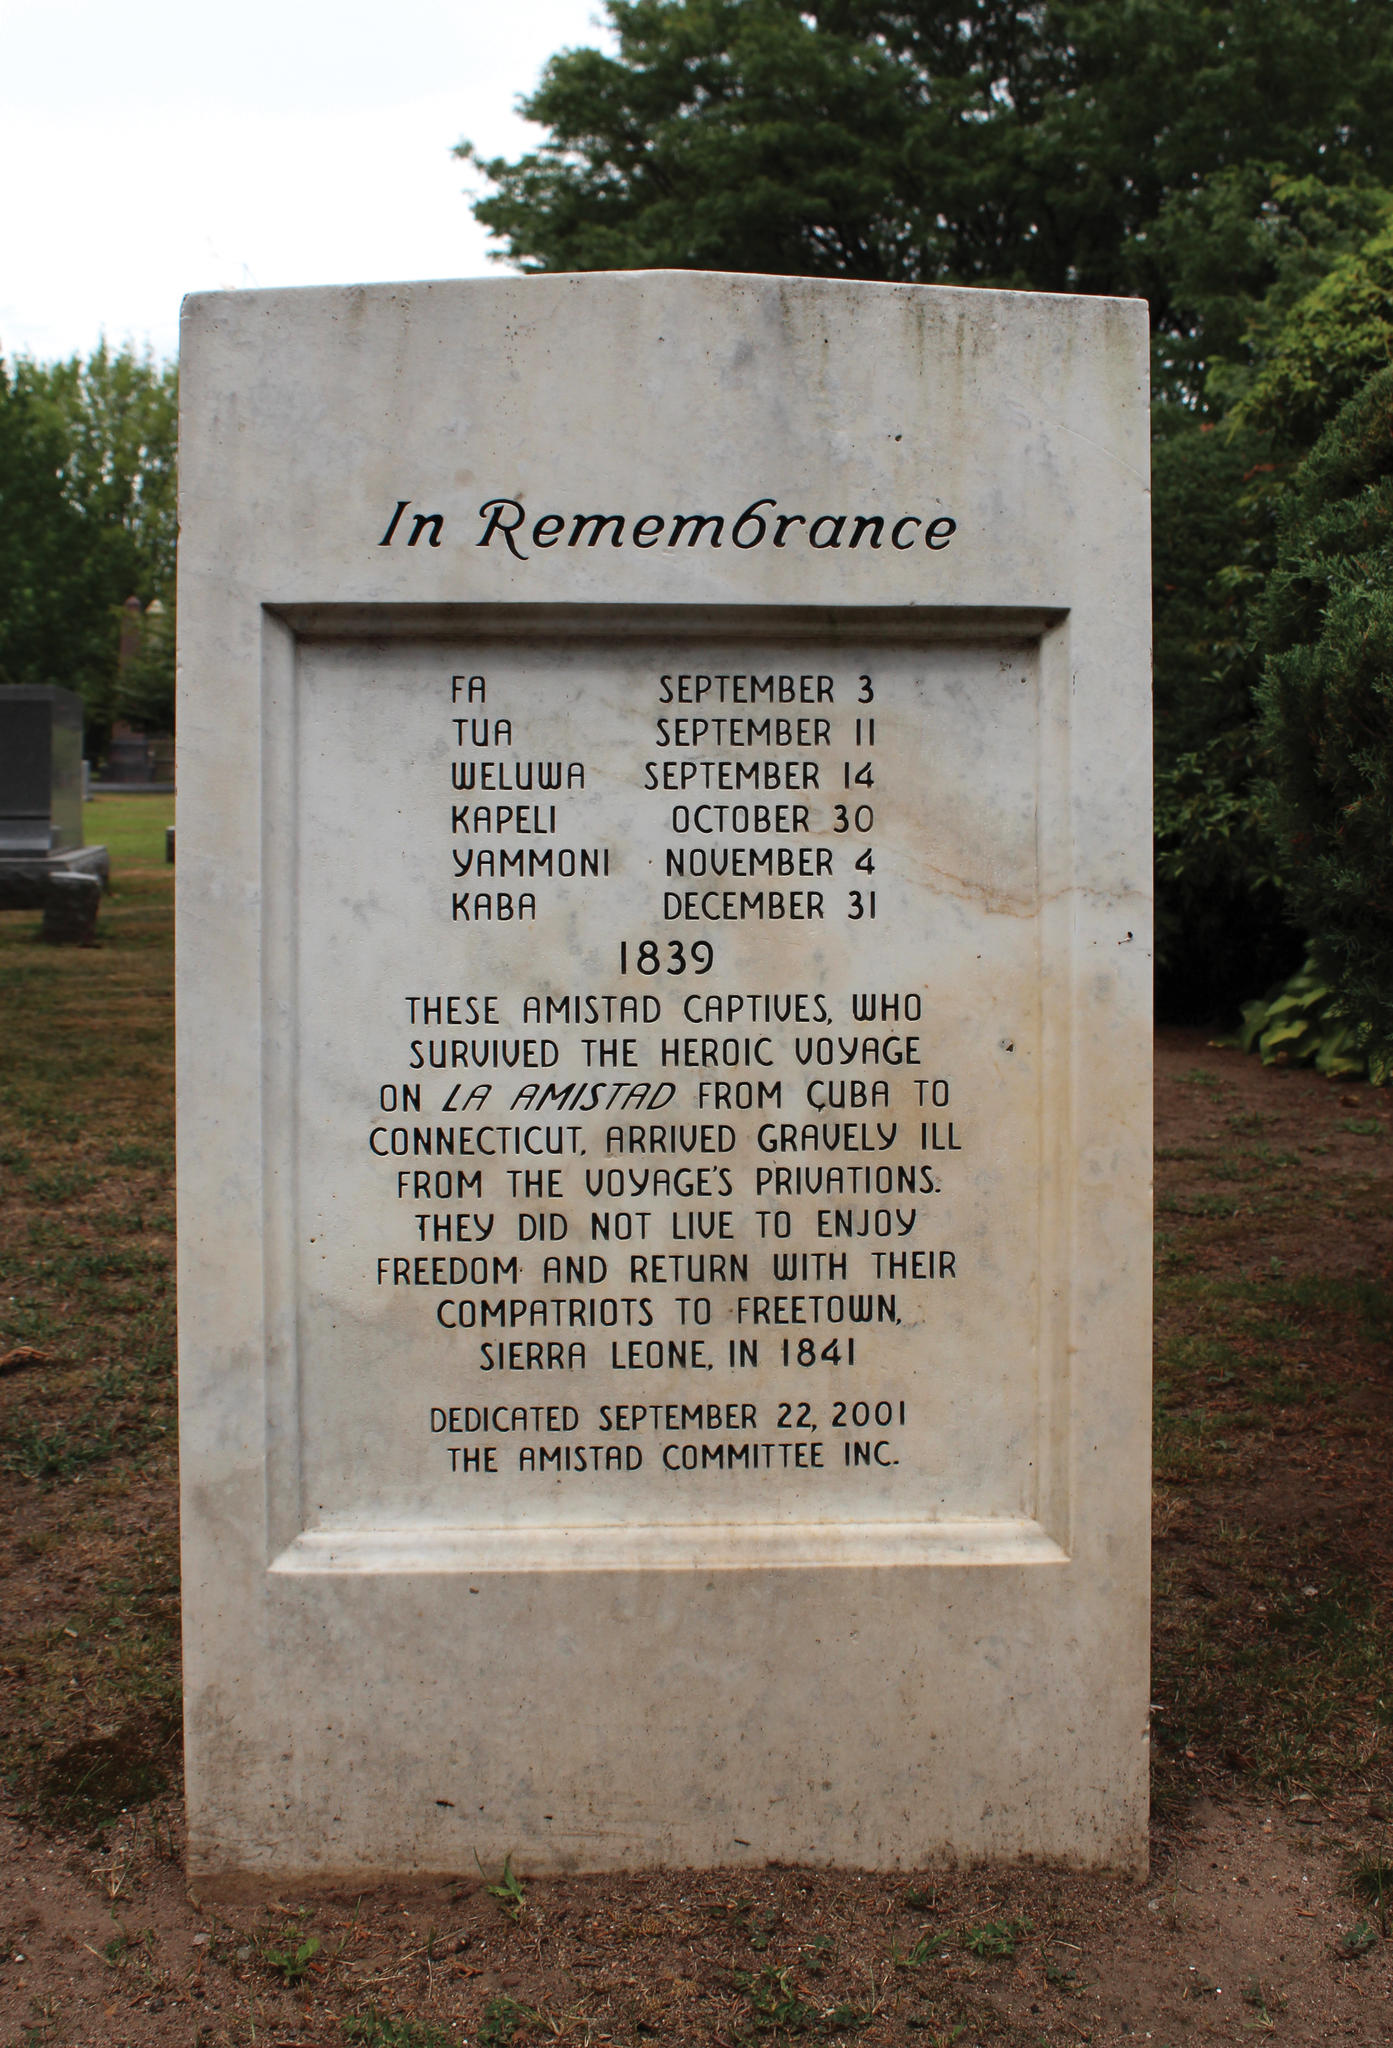 "<span style=""background-color:transparent"">Gravestone honoring the six men of the Amistad buried in the Grove Street Cemetery who died in New Haven, September 3–December 31, 1839: </span><span style=""background-color:transparent"">Fa,</span><span style=""background-color:transparent""> September 3; </span><span style=""background-color:transparent"">Tua,</span><span style=""background-color:transparent""> September 11; </span><span style=""background-color:transparent"">We-lu-wa,</span><span style=""background-color:transparent""> September 14; </span><span style=""background-color:transparent"">Ka-pe-li,</span><span style=""background-color:transparent""> October 30; </span><span style=""background-color:transparent"">Yam-mo-ni,</span><span style=""background-color:transparent""> November 4; and </span><span style=""background-color:transparent"">Ka-ba,</span><span style=""background-color:transparent""> December 31.</span><span style=""background-color:transparent""> </span><span><span style=""background-color:transparent"">Location: B Magnolia</span></span>"